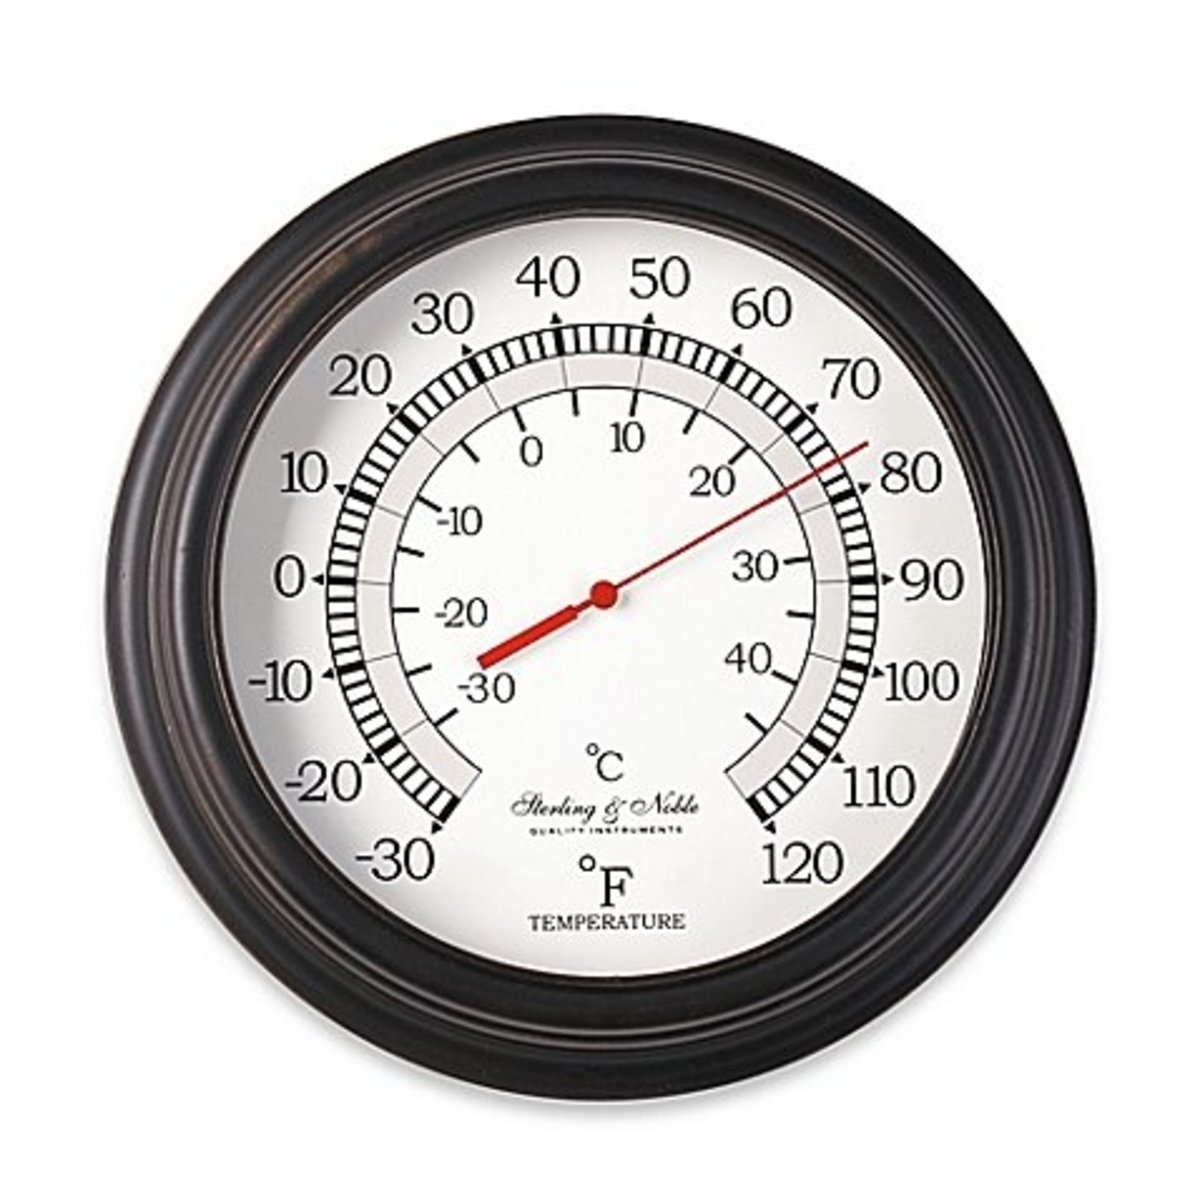 Outside temperature gauges and thermometers are easily obtainable.